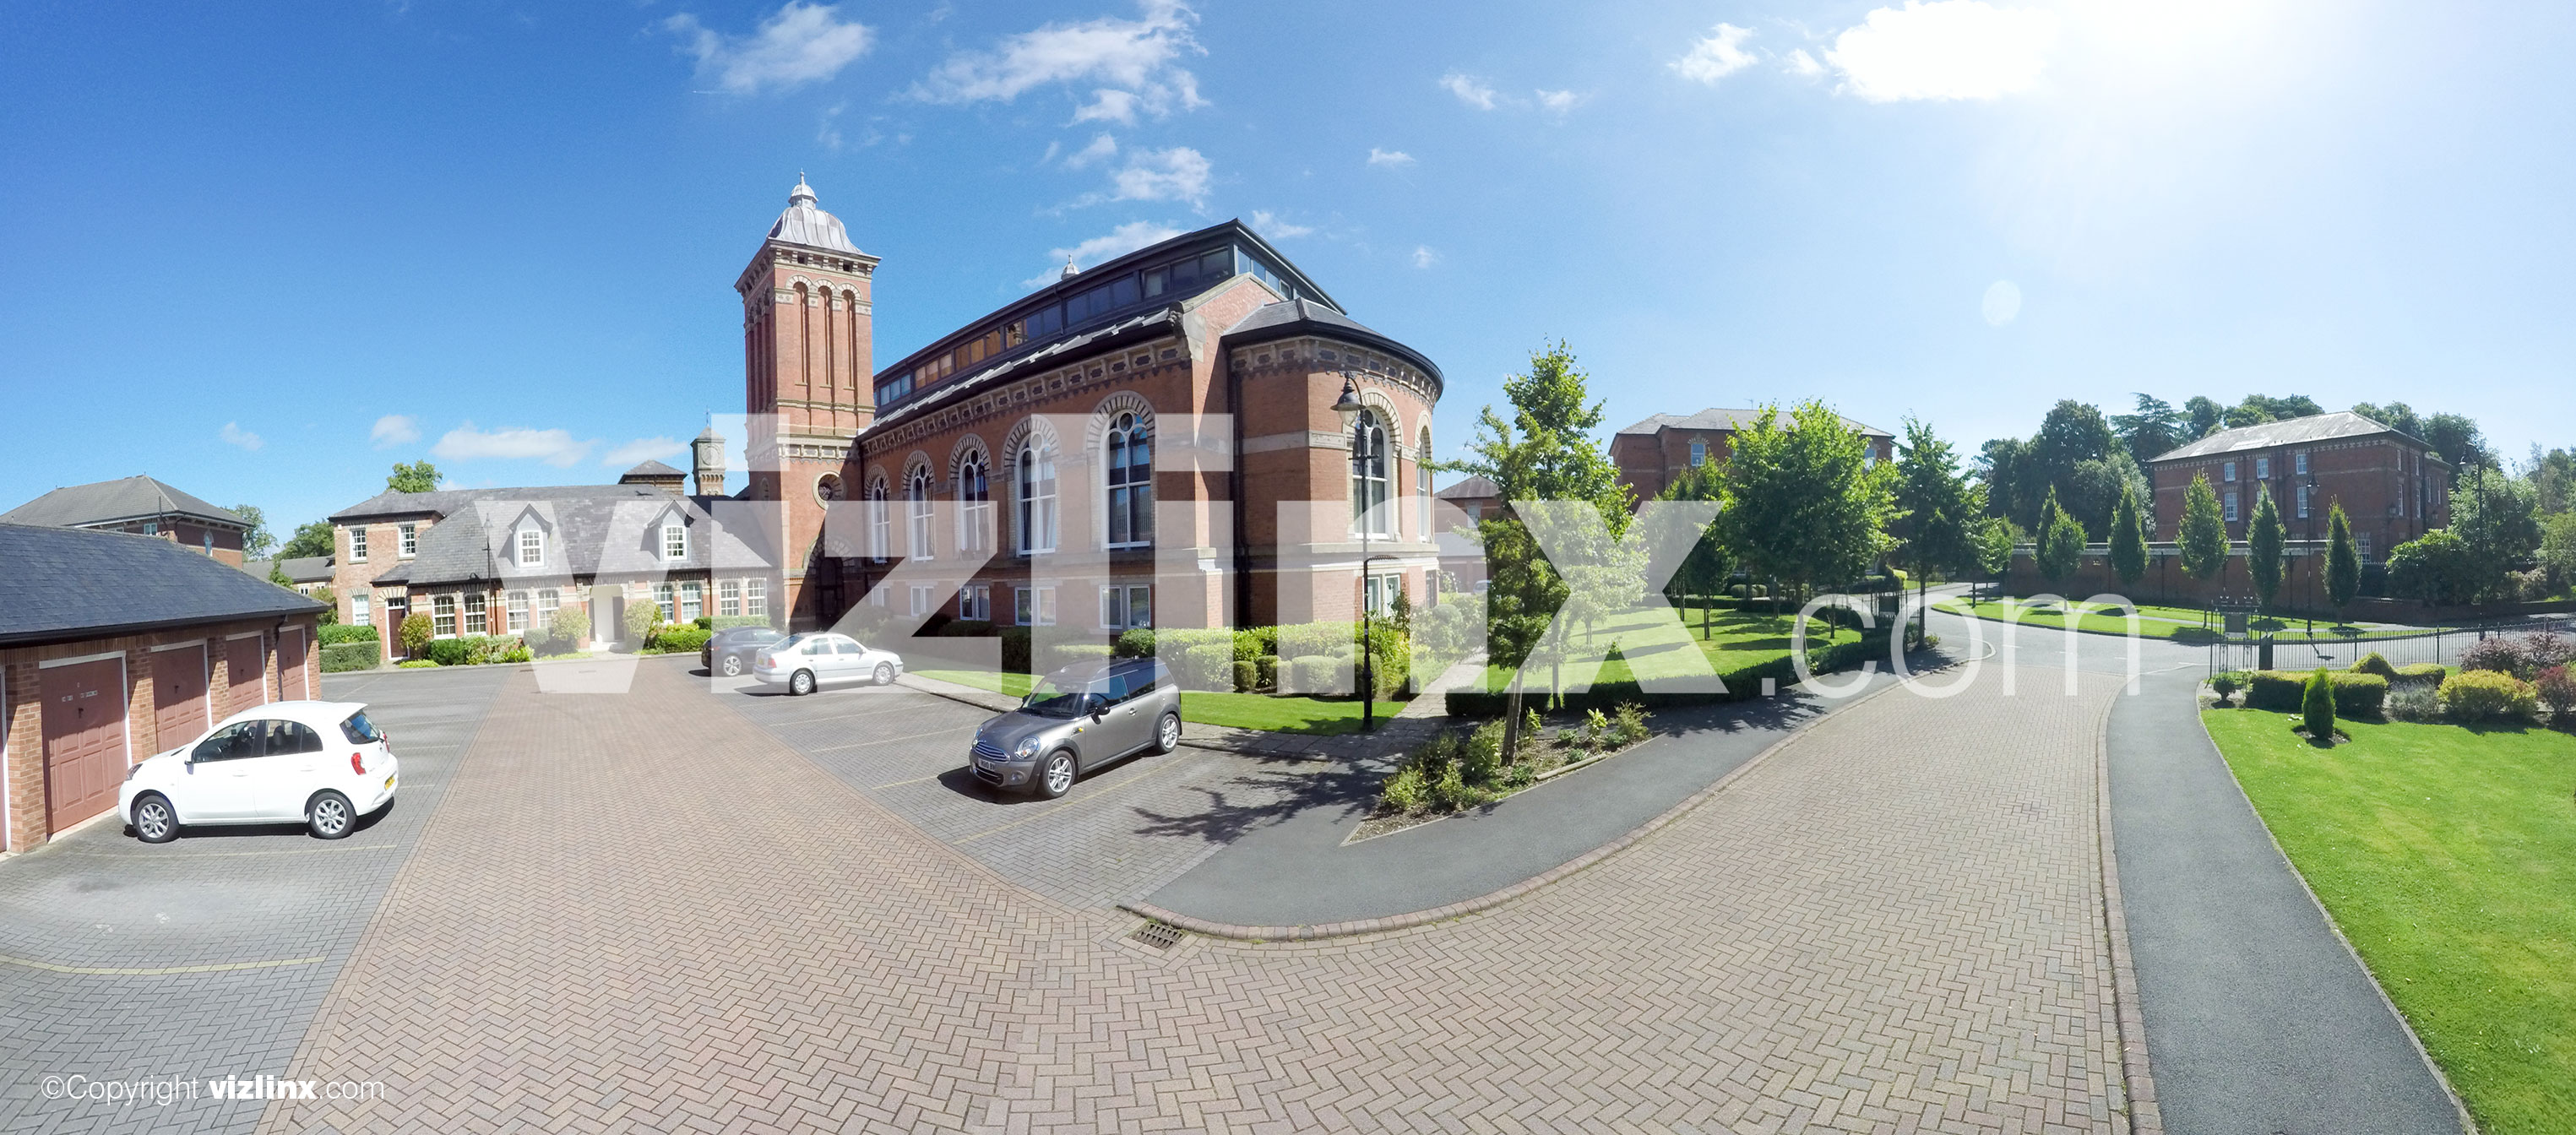 360 panorama of The Pavilions Macclesfield